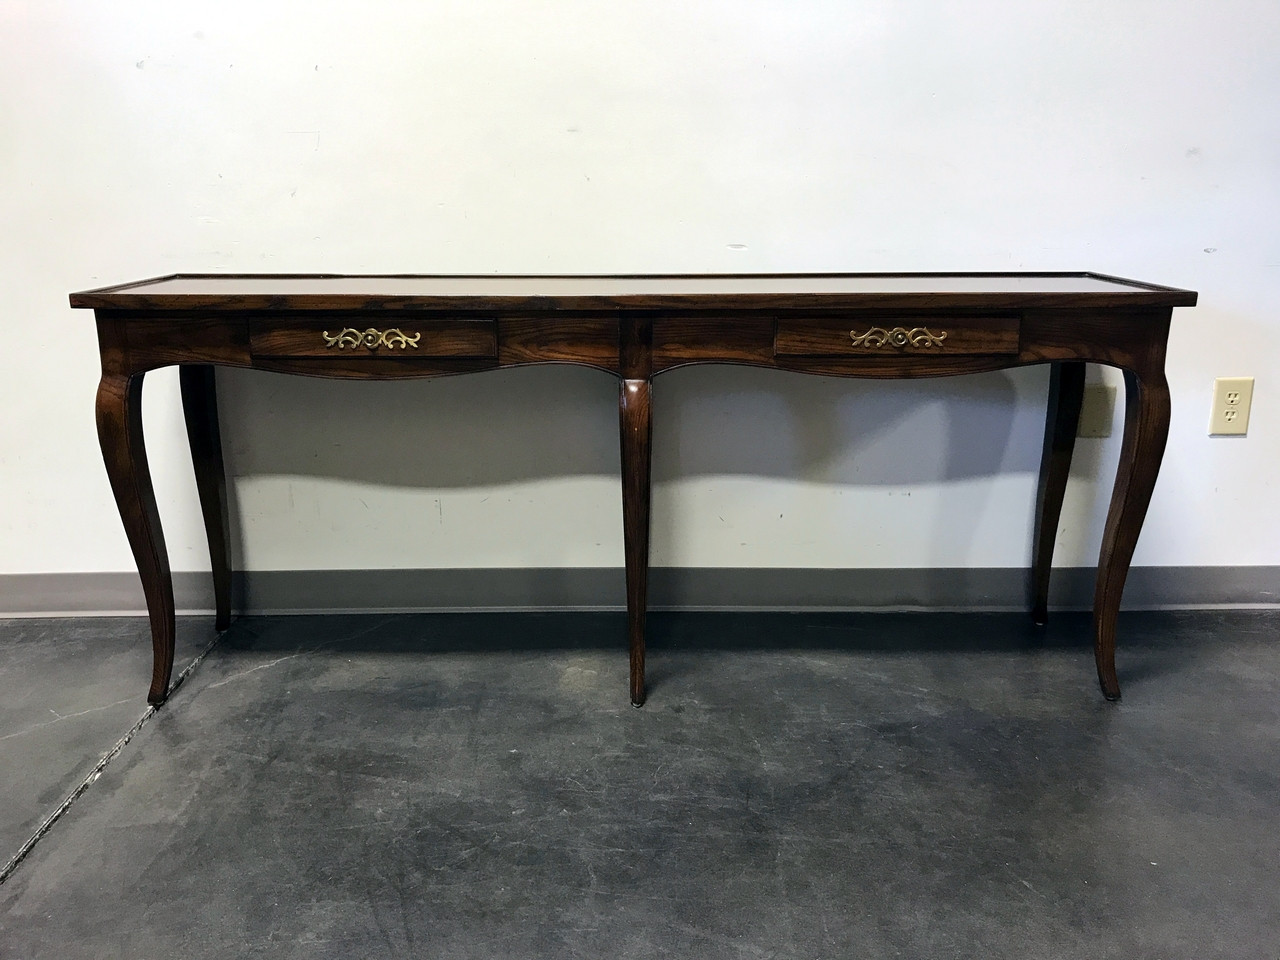 SOLD OUT HENREDON Inlaid Oak French Country Style Console Sofa - French country style console table